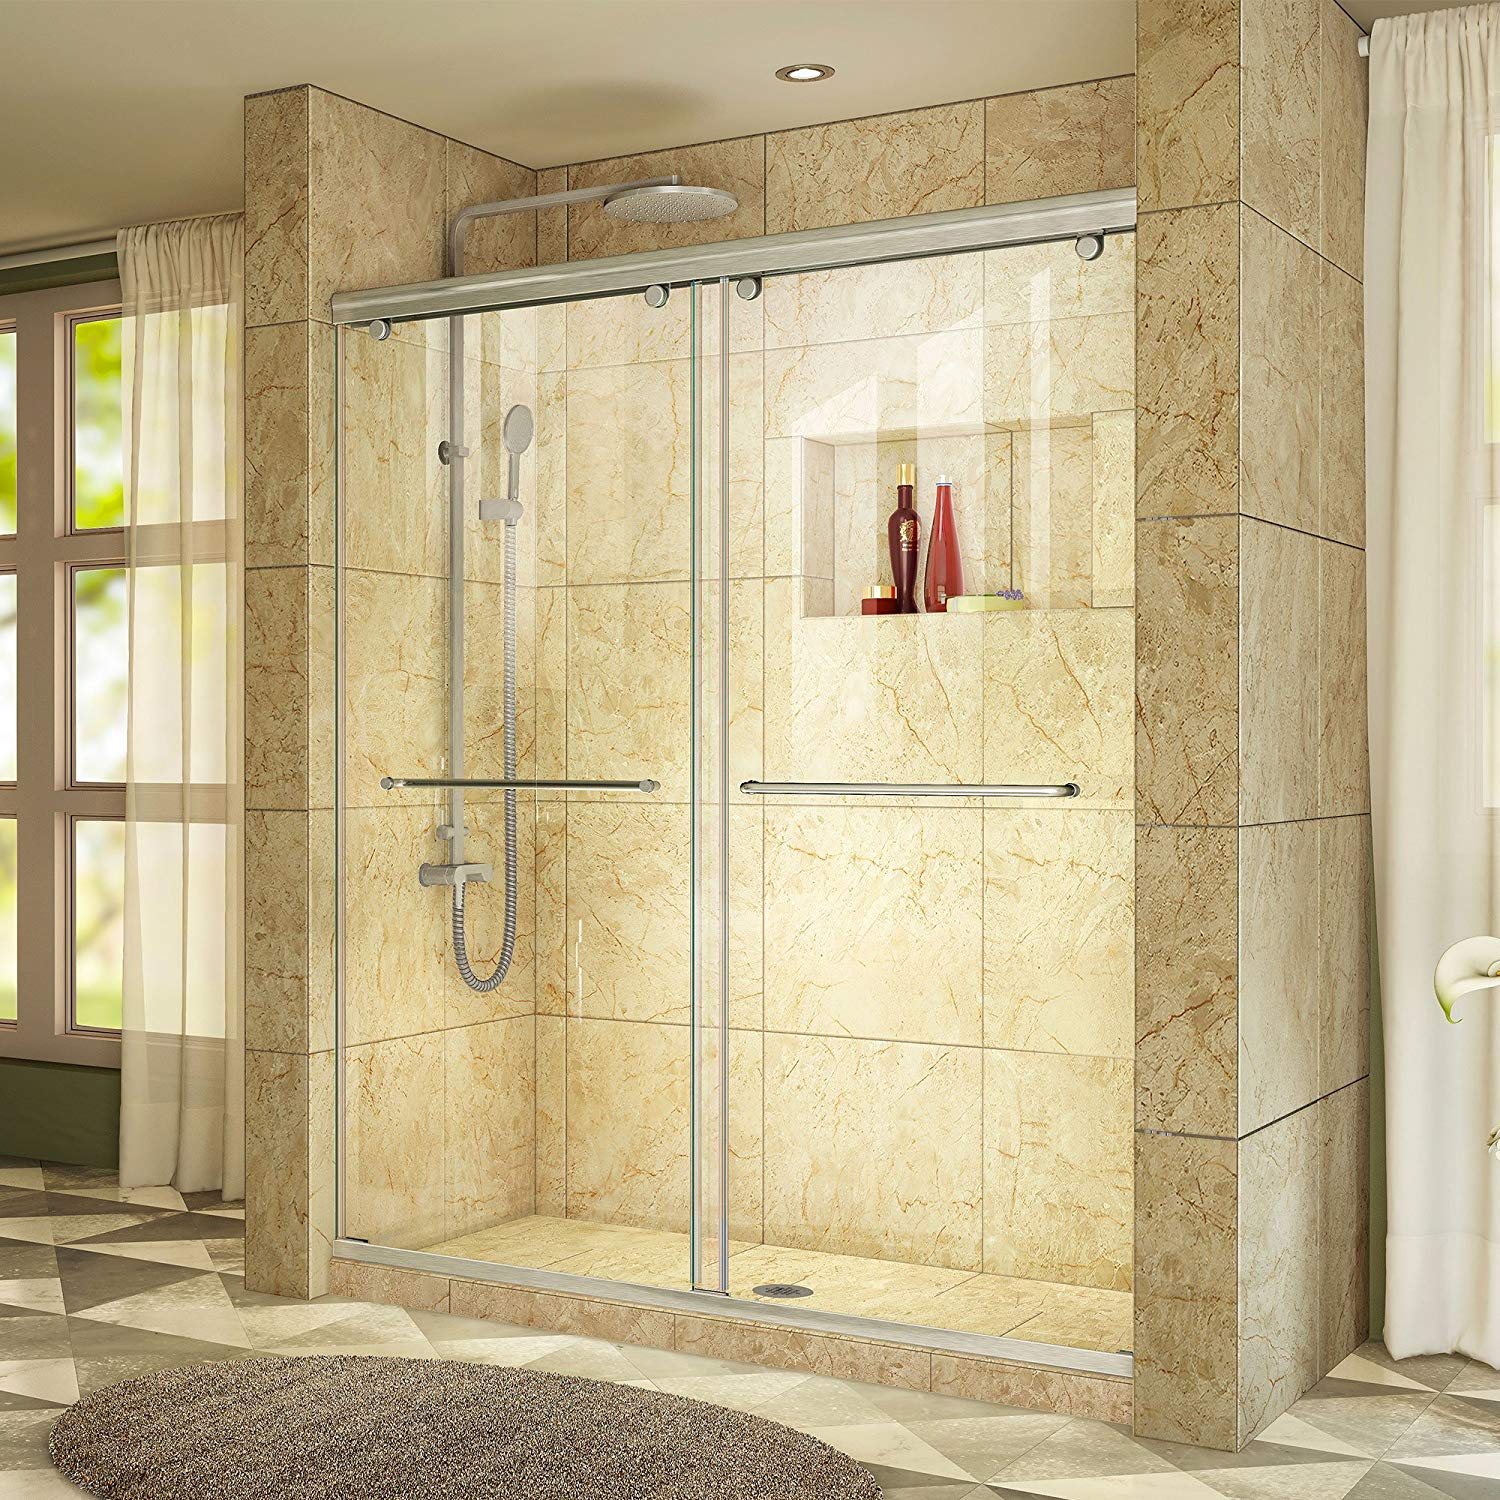 DreamLine Charisma 44-48 Best Shower Enclosure Kit For The Money